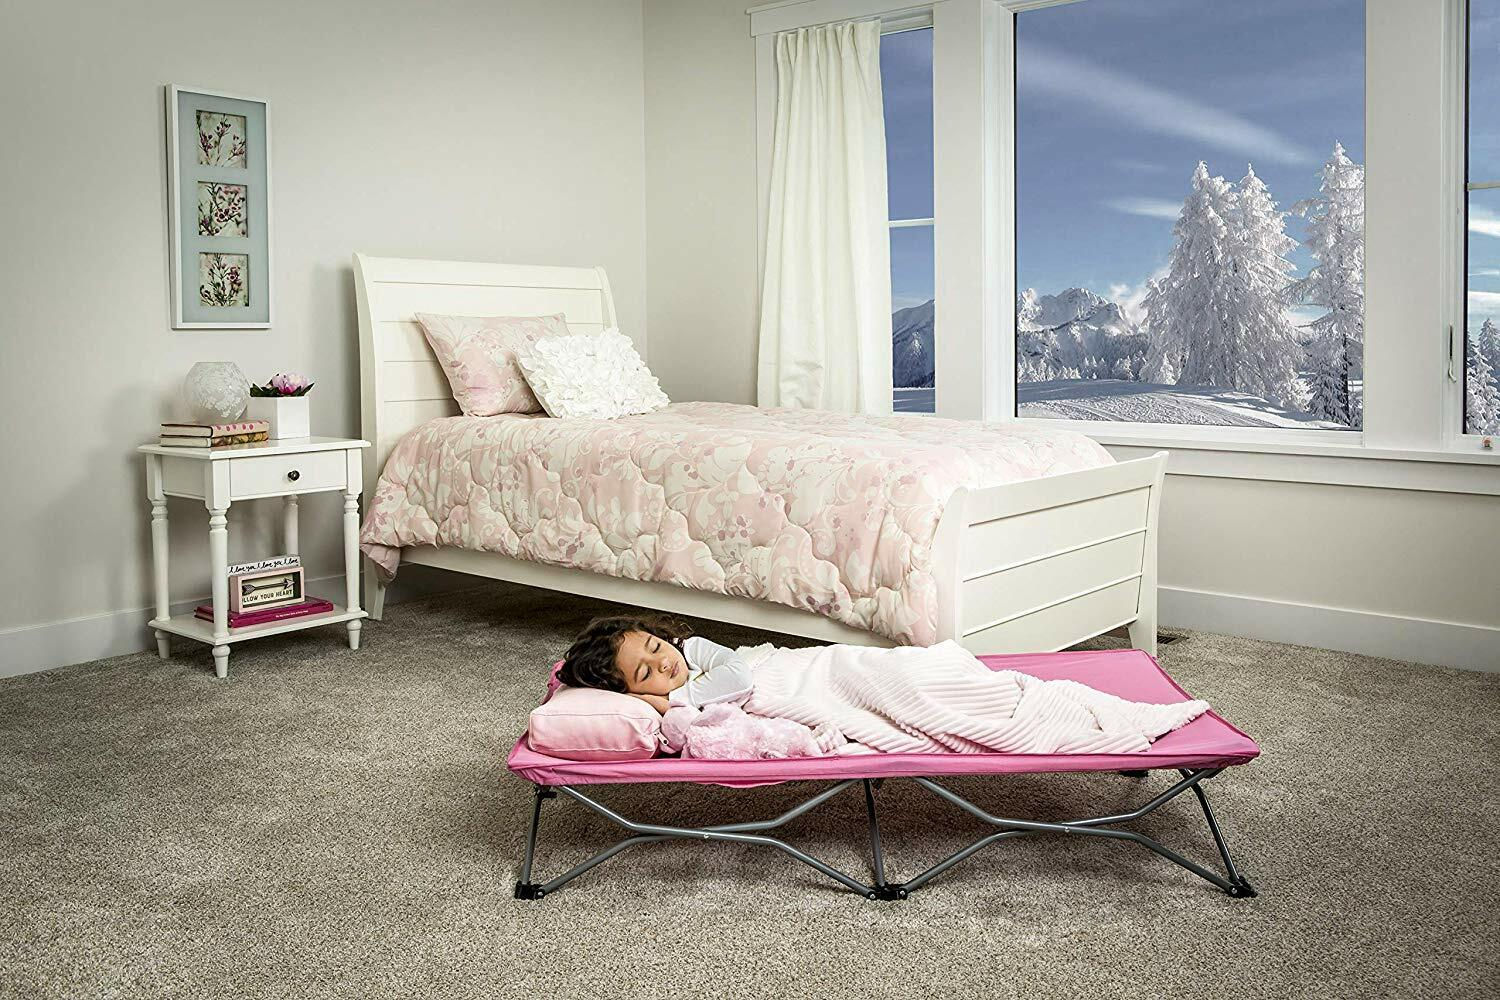 Regalo My Cot Portable Toddler Bed, Includes Fitted Sheet, P